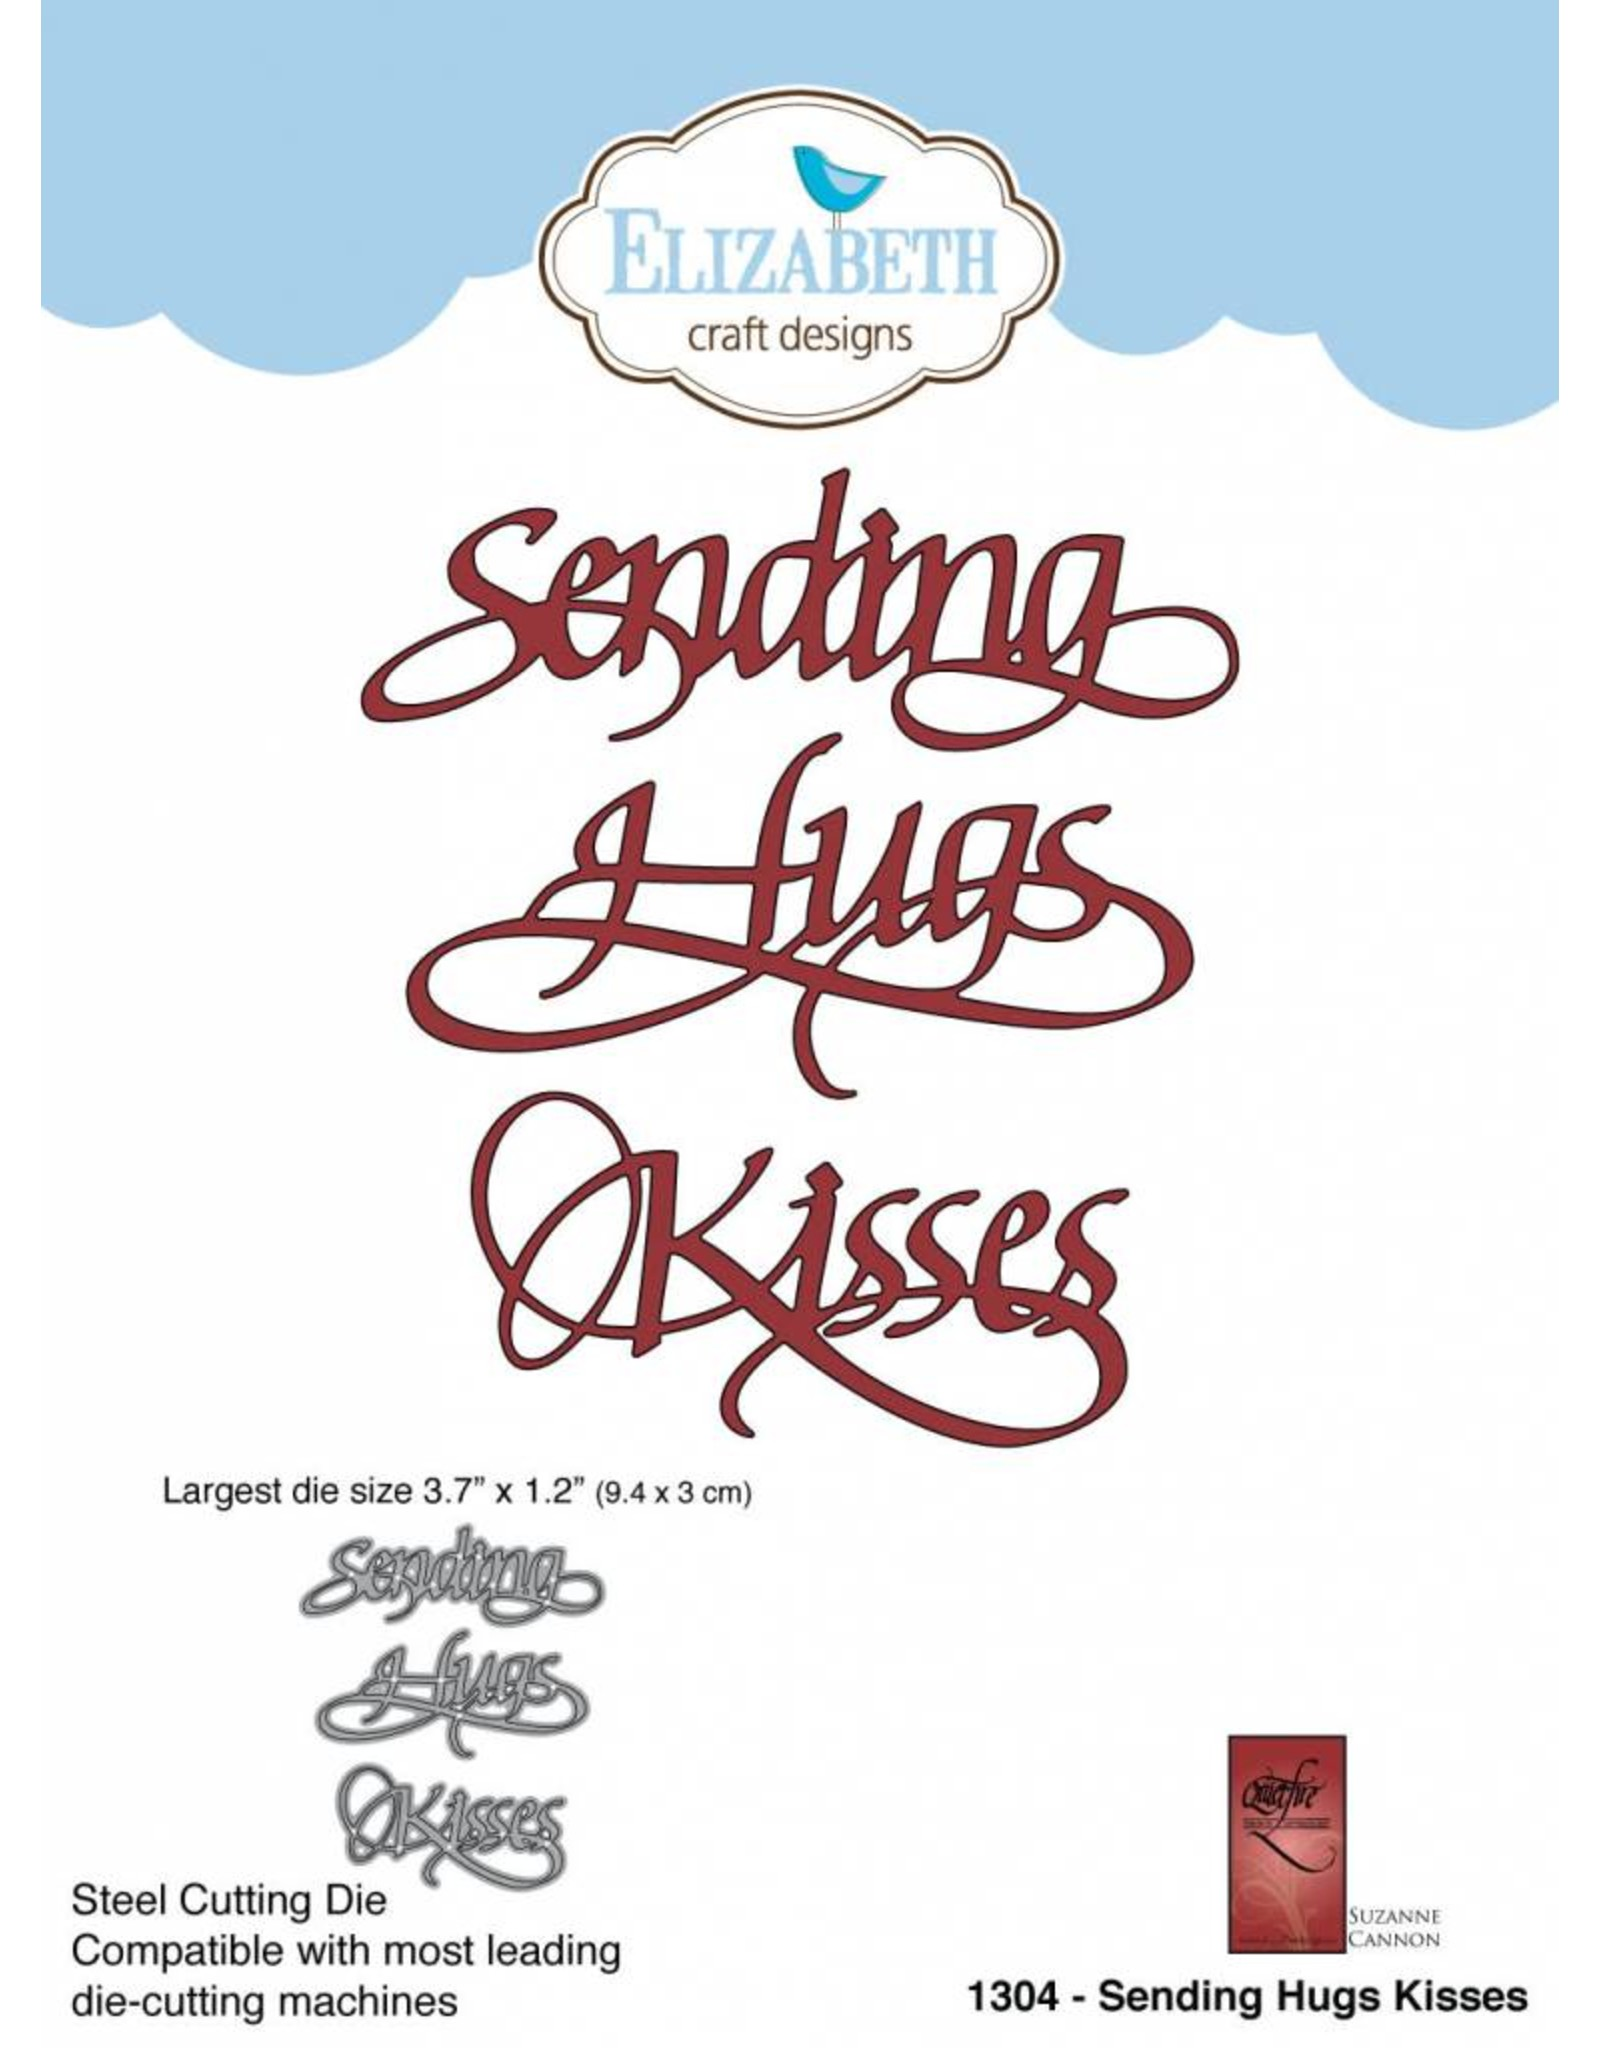 Elizabeth Craft Designs Elizabeth Craft Designs dies Sending Hugs Kisses 1304